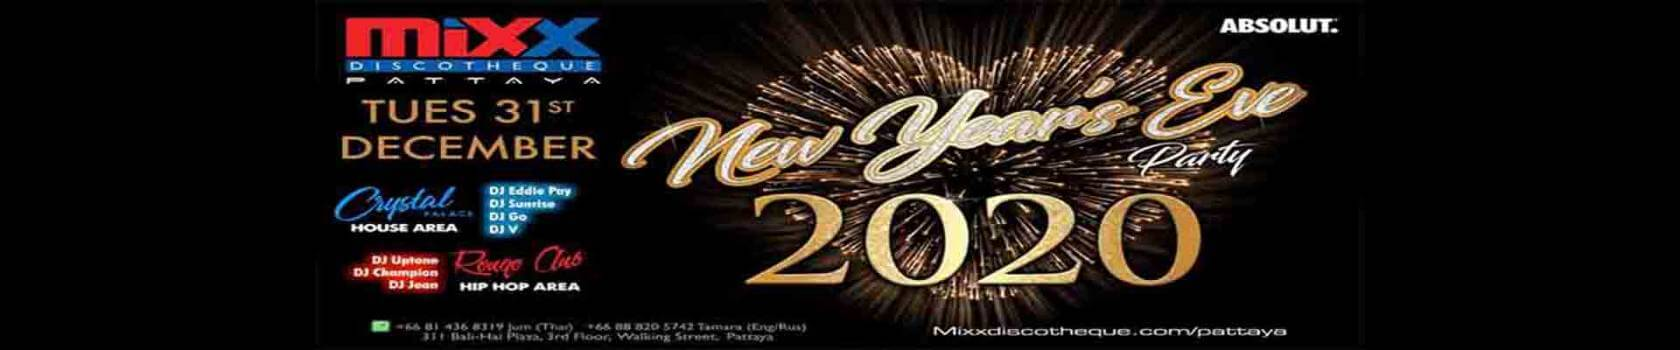 Mixx New Years Eve Party 2020